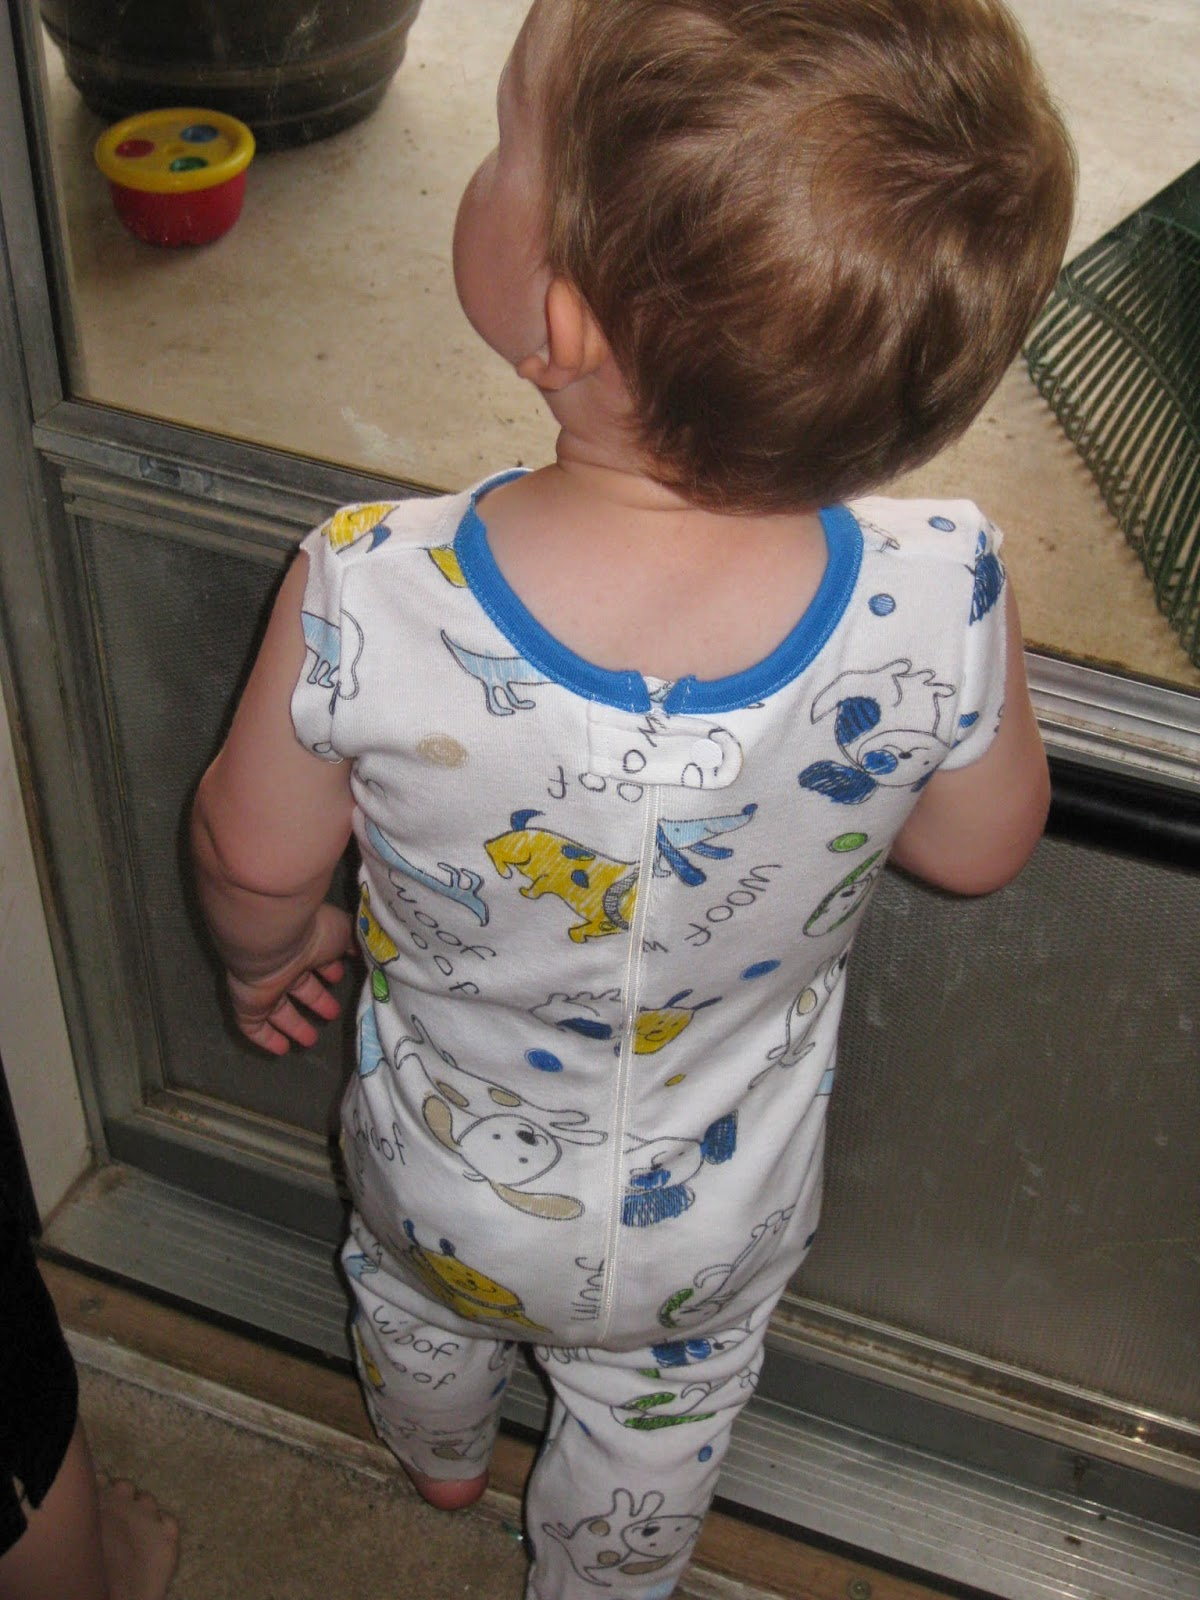 Your Childs Temperament: Intense — Gearing Up for